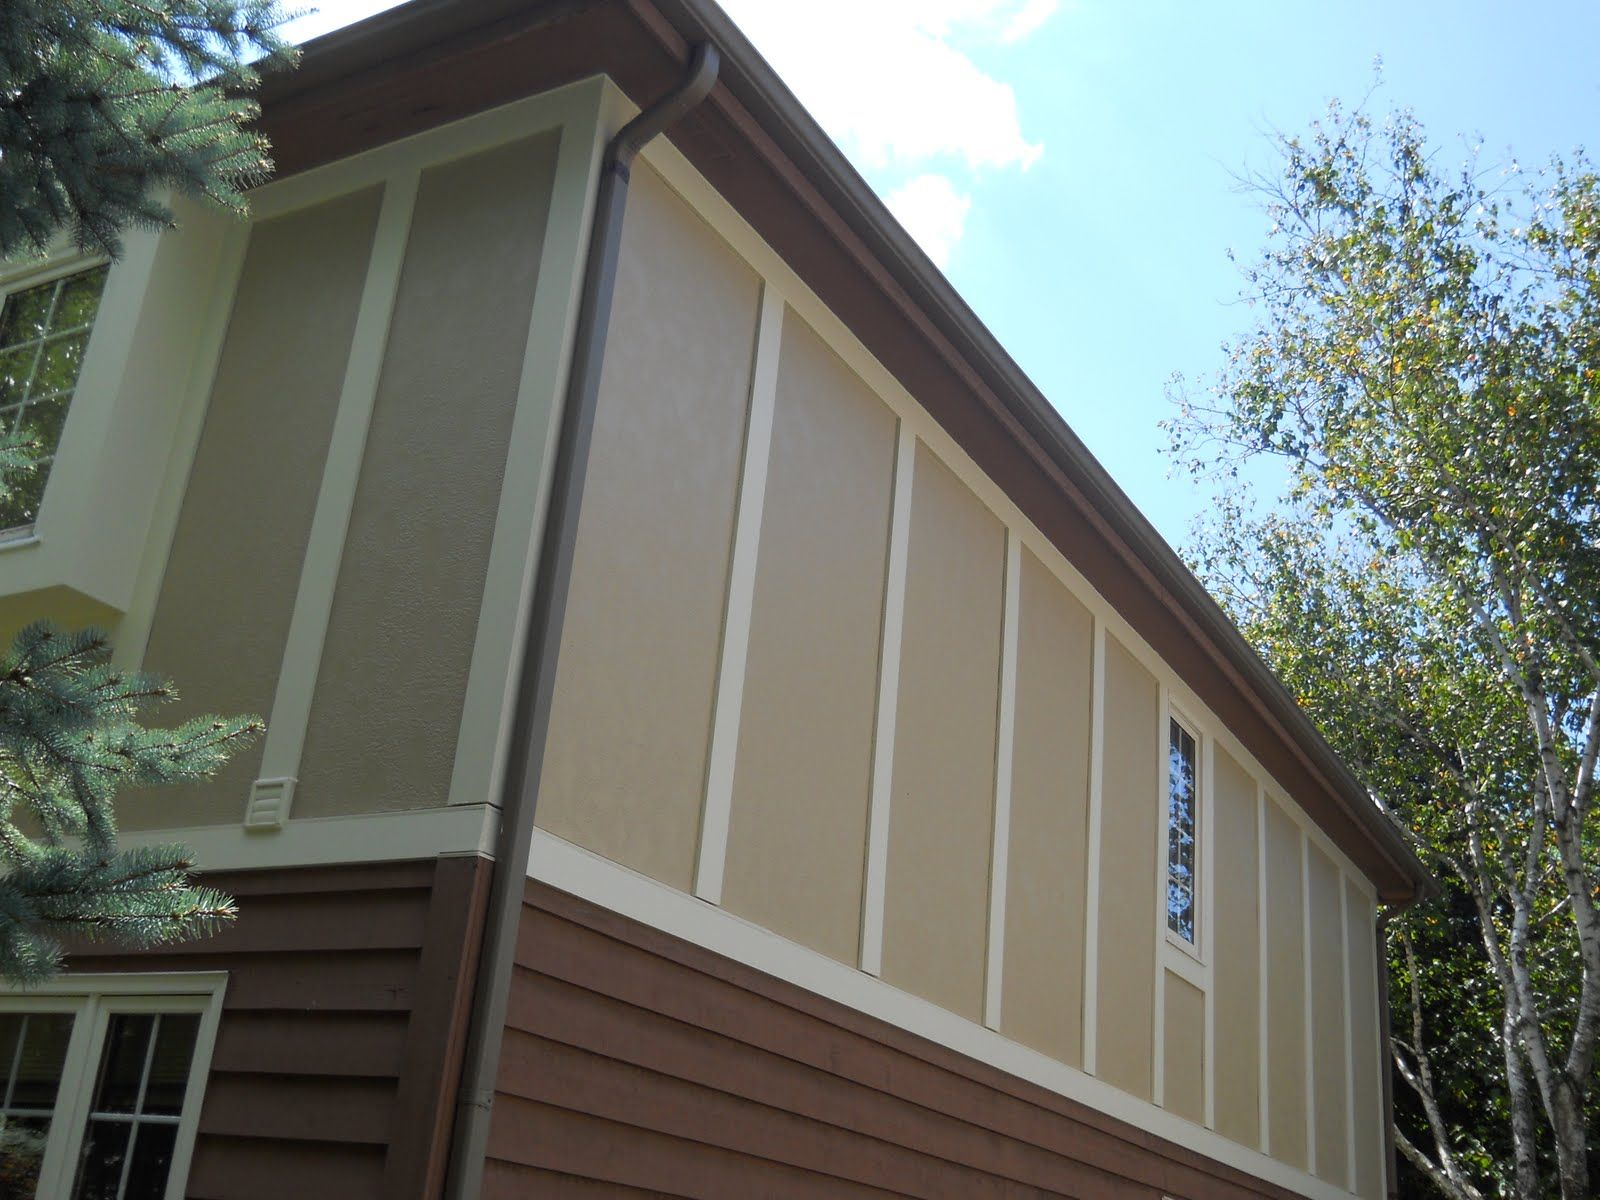 James Hardie Stucco Panels Siding Pinterest